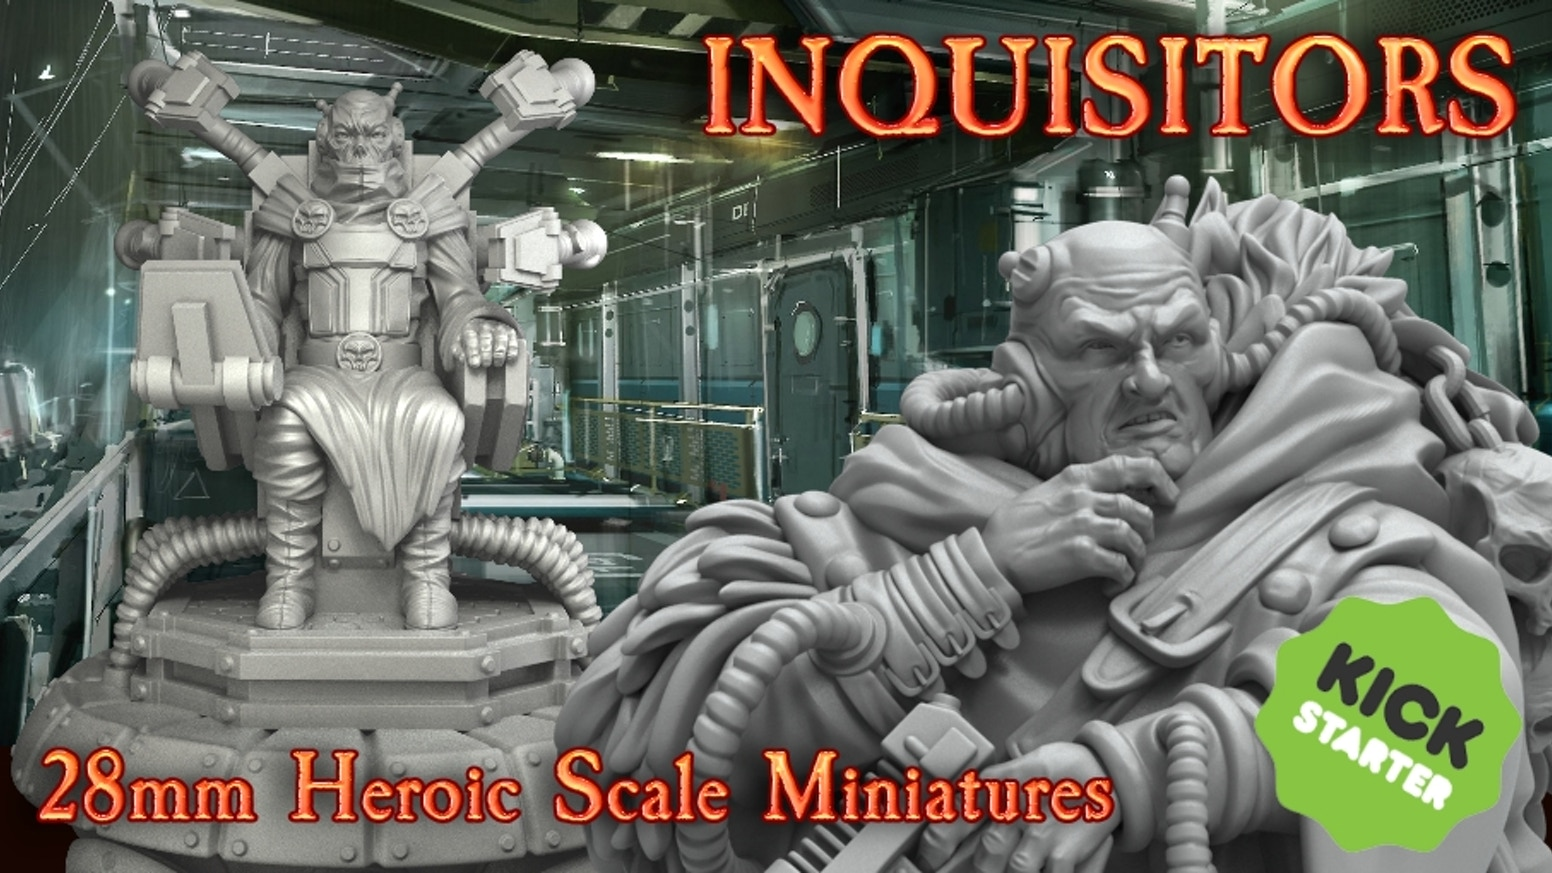 Inquisitors resin and digital miniatures in 28mm heroic scale